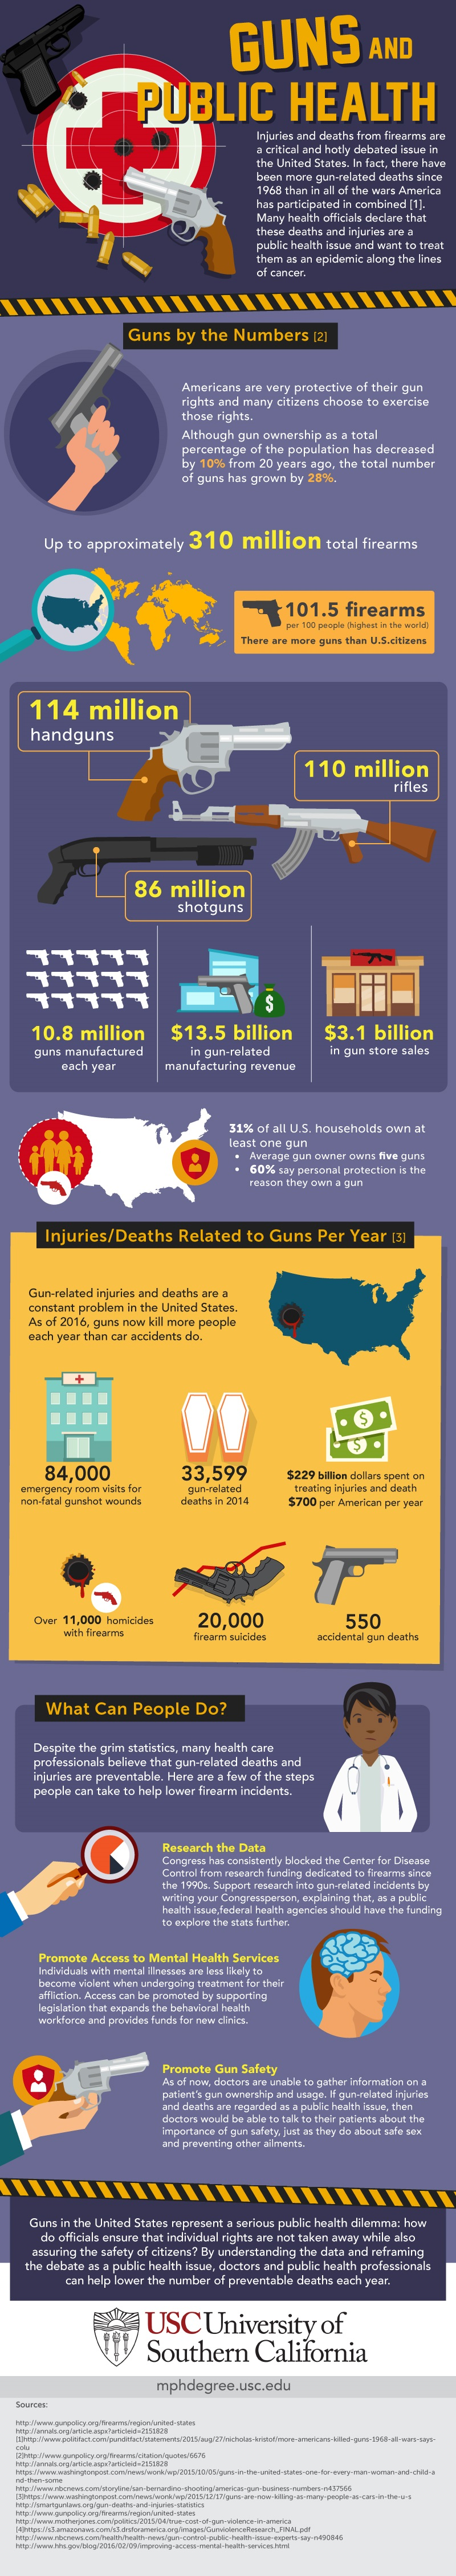 An infographic about guns as a public health issue by the University of Southern California.